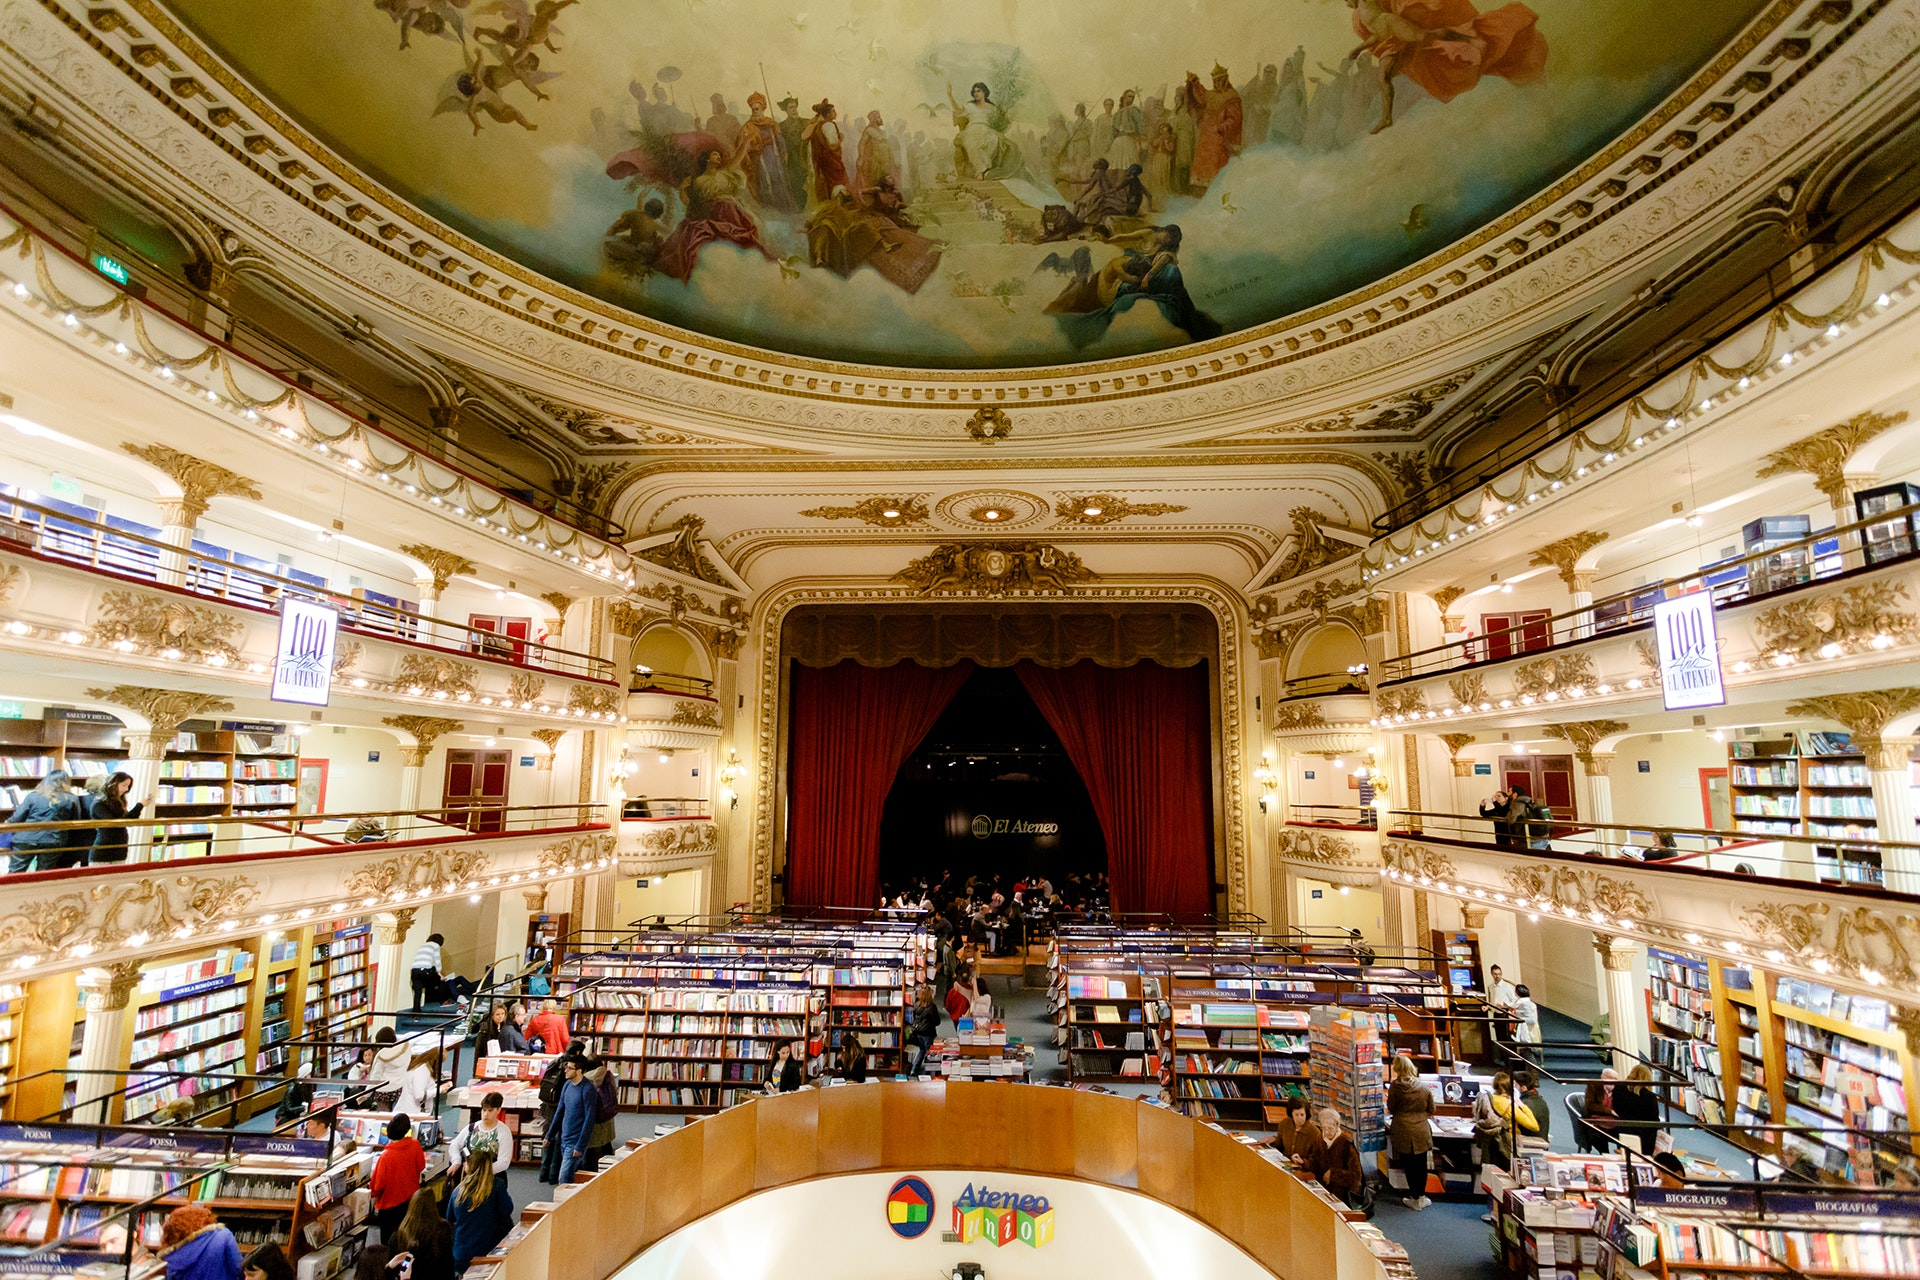 Housed in an old theater, El Ateneo Grand Splendid is the largest bookstore in the country and one of the most famous in the world.